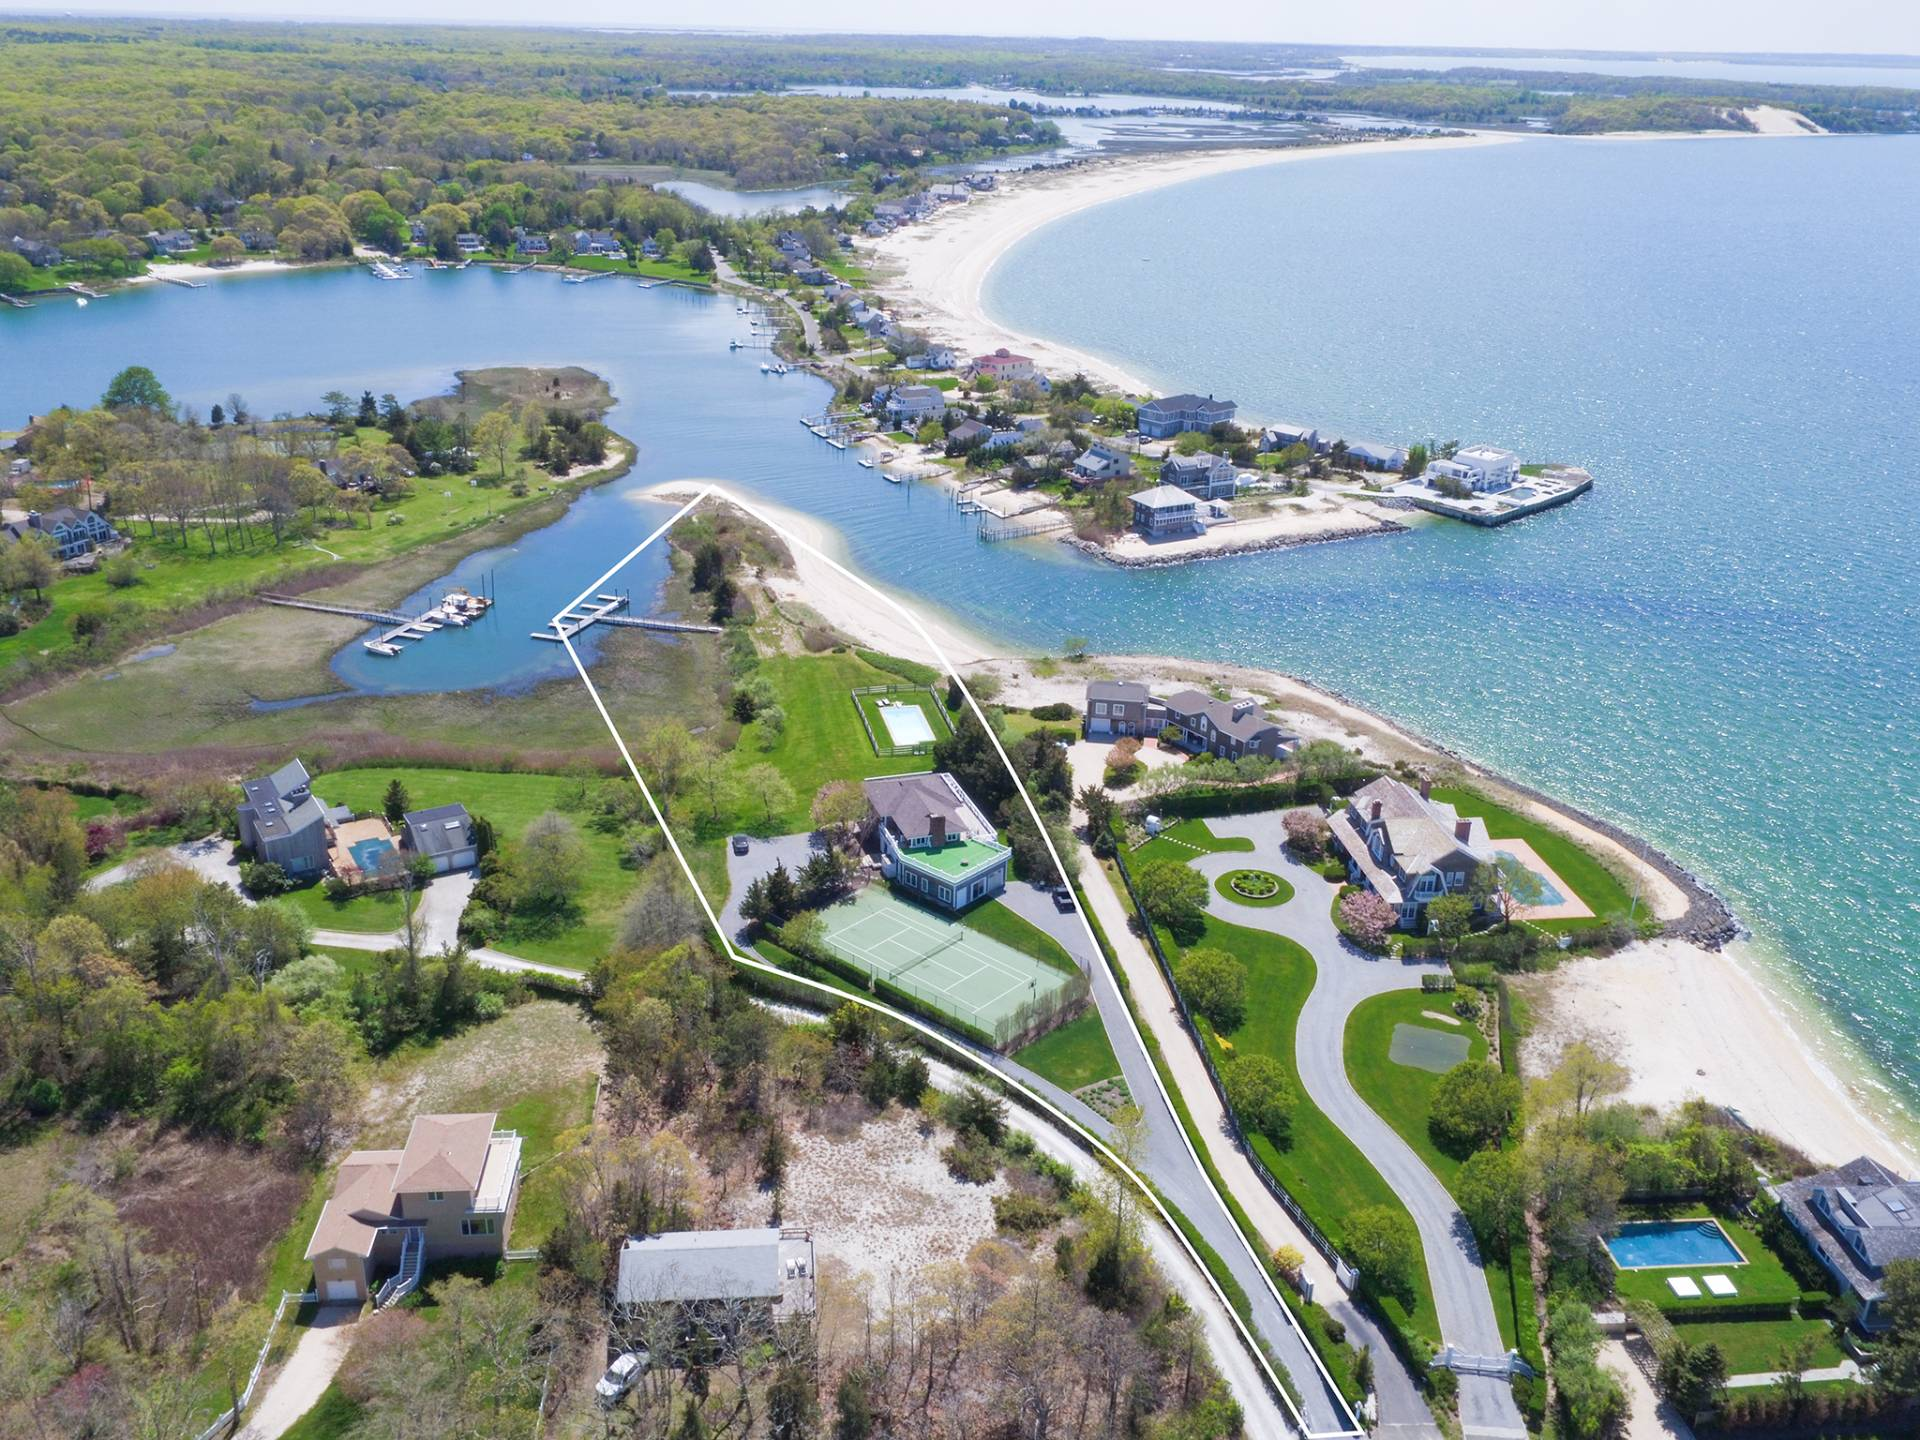 Single Family Home for Sale at Bayfront - Pool - Tennis - Deep Water Dock - Beach 66 Peconic Bay Avenue, Southampton, New York